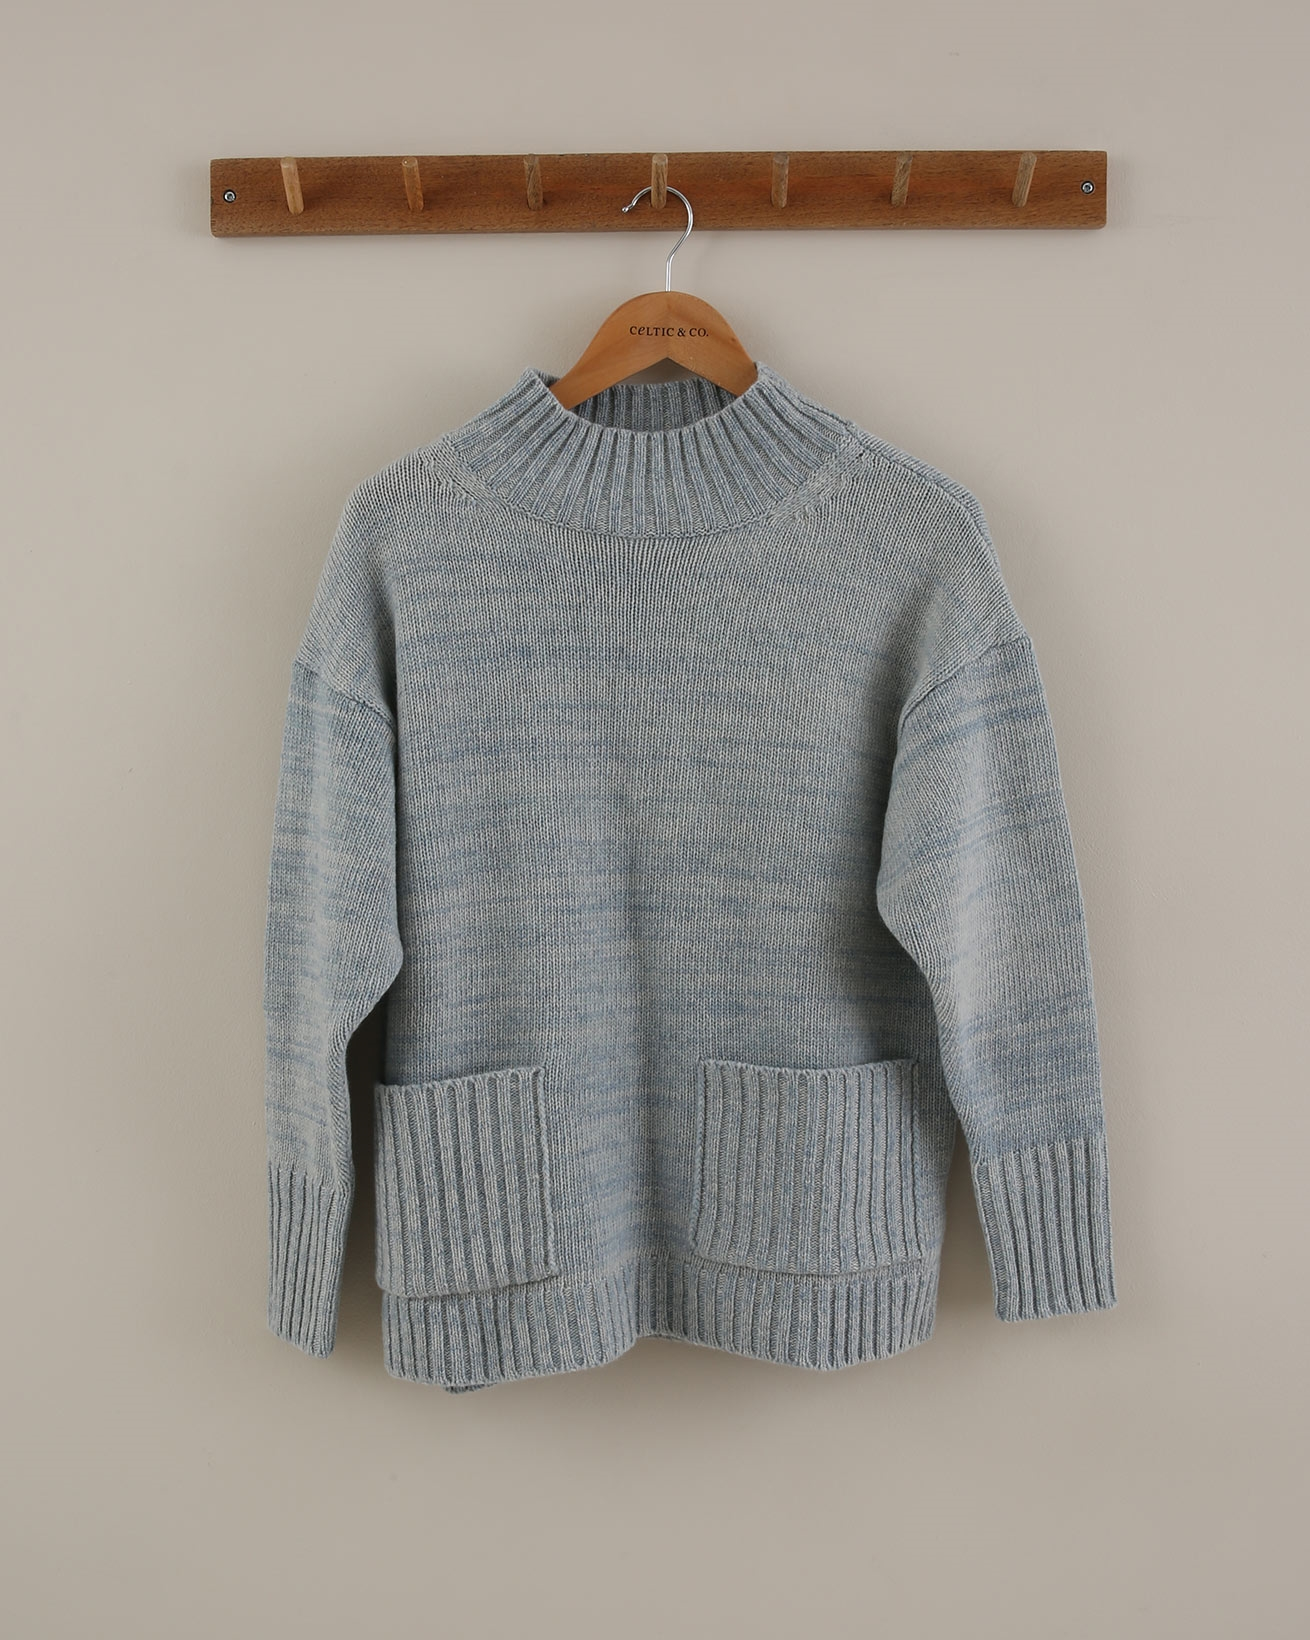 Geelong Pocket Detail Jumper - Size Small - Skylight Cable - 1875